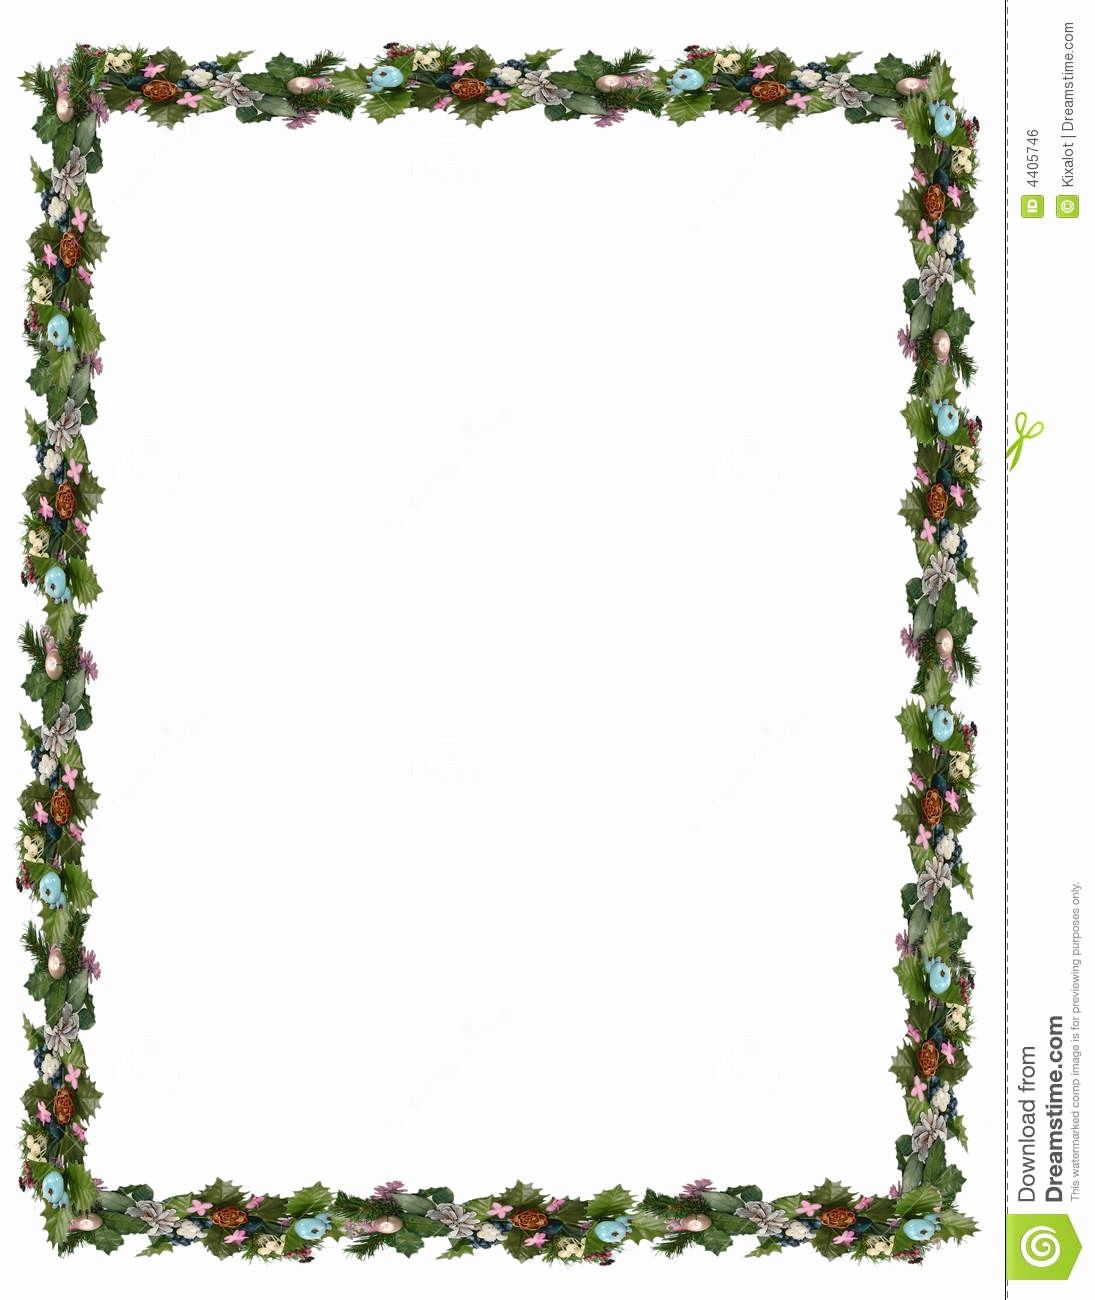 Festive Borders for Word Document Inspirational Winter Holiday Borders Clipart